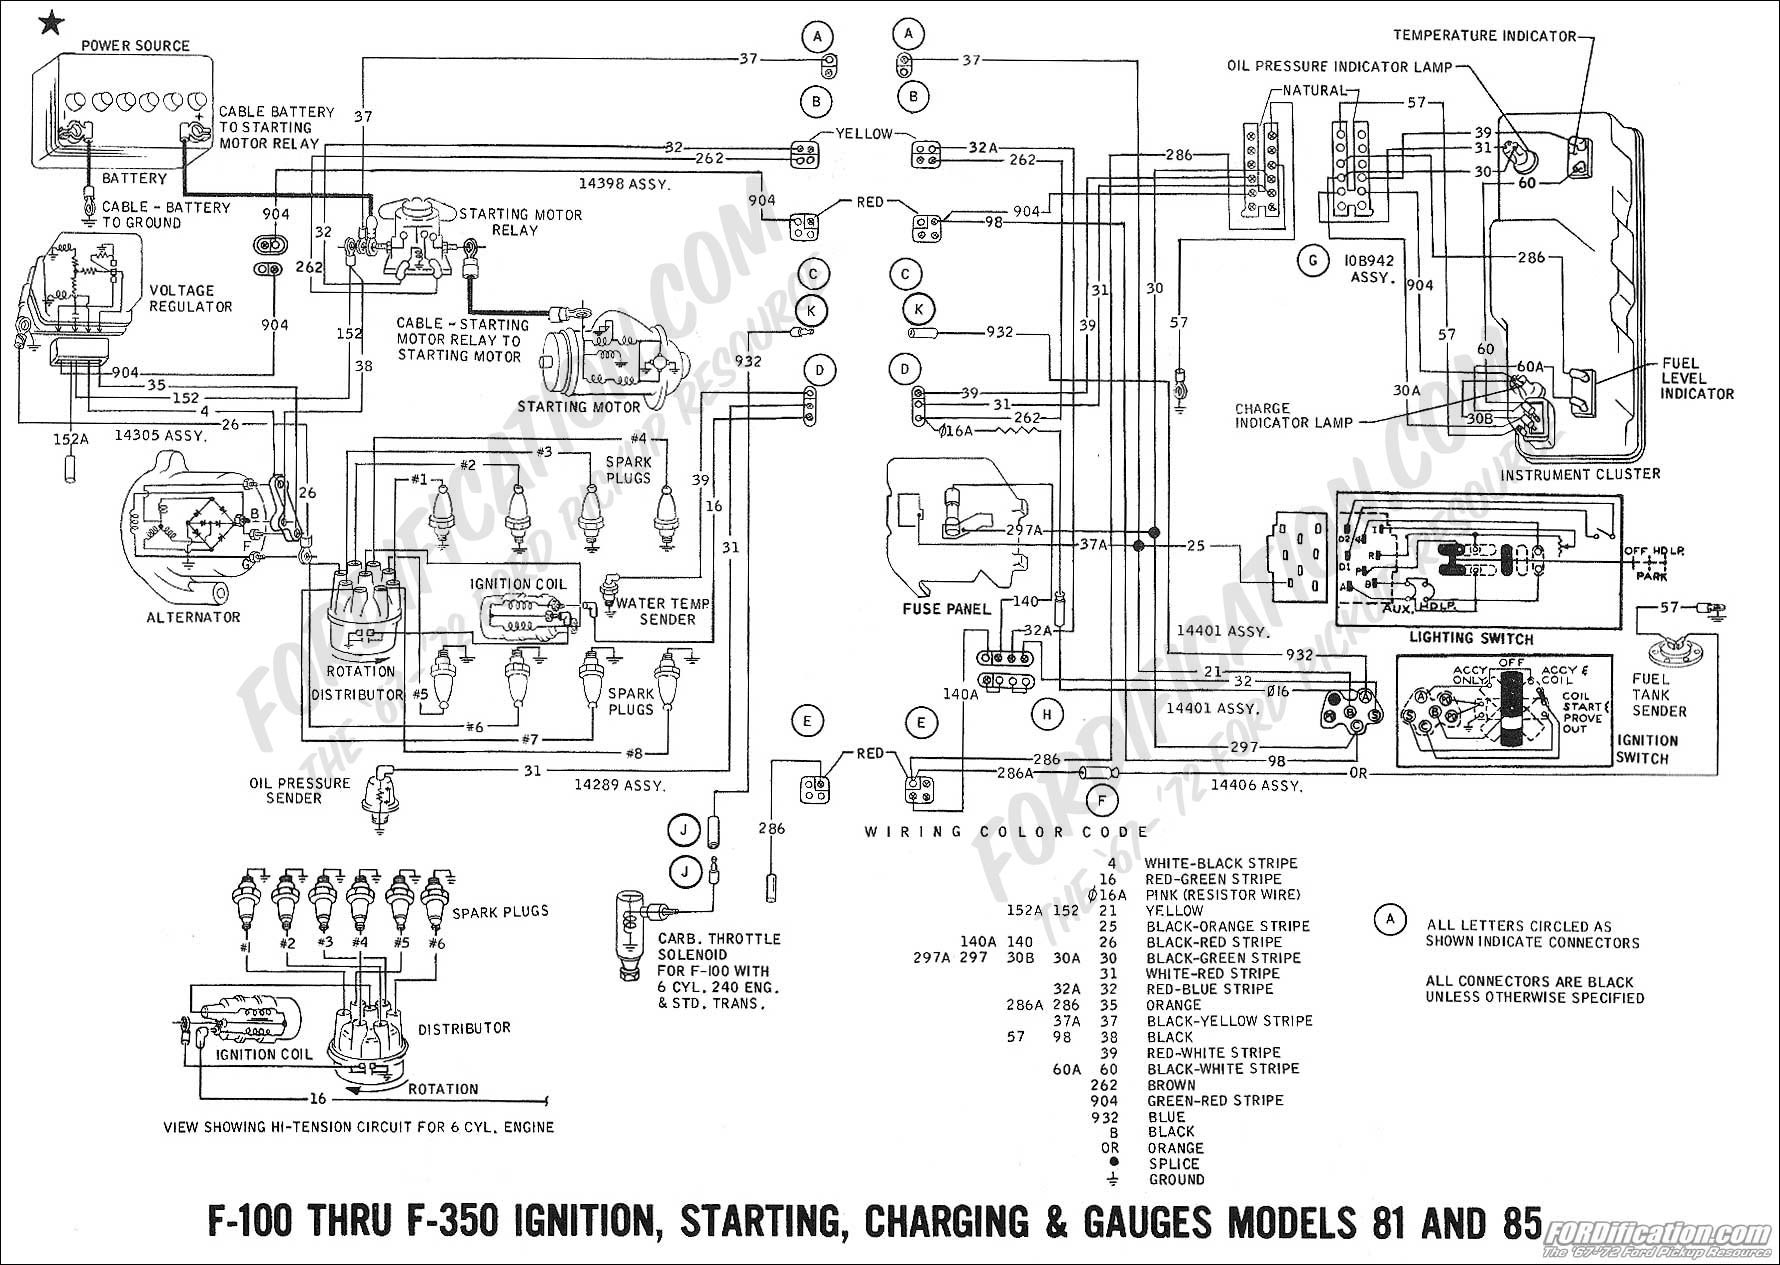 Daewoo Lanos 1 4 Engine Diagram Caroldoey - Wiring Diagrams Long on